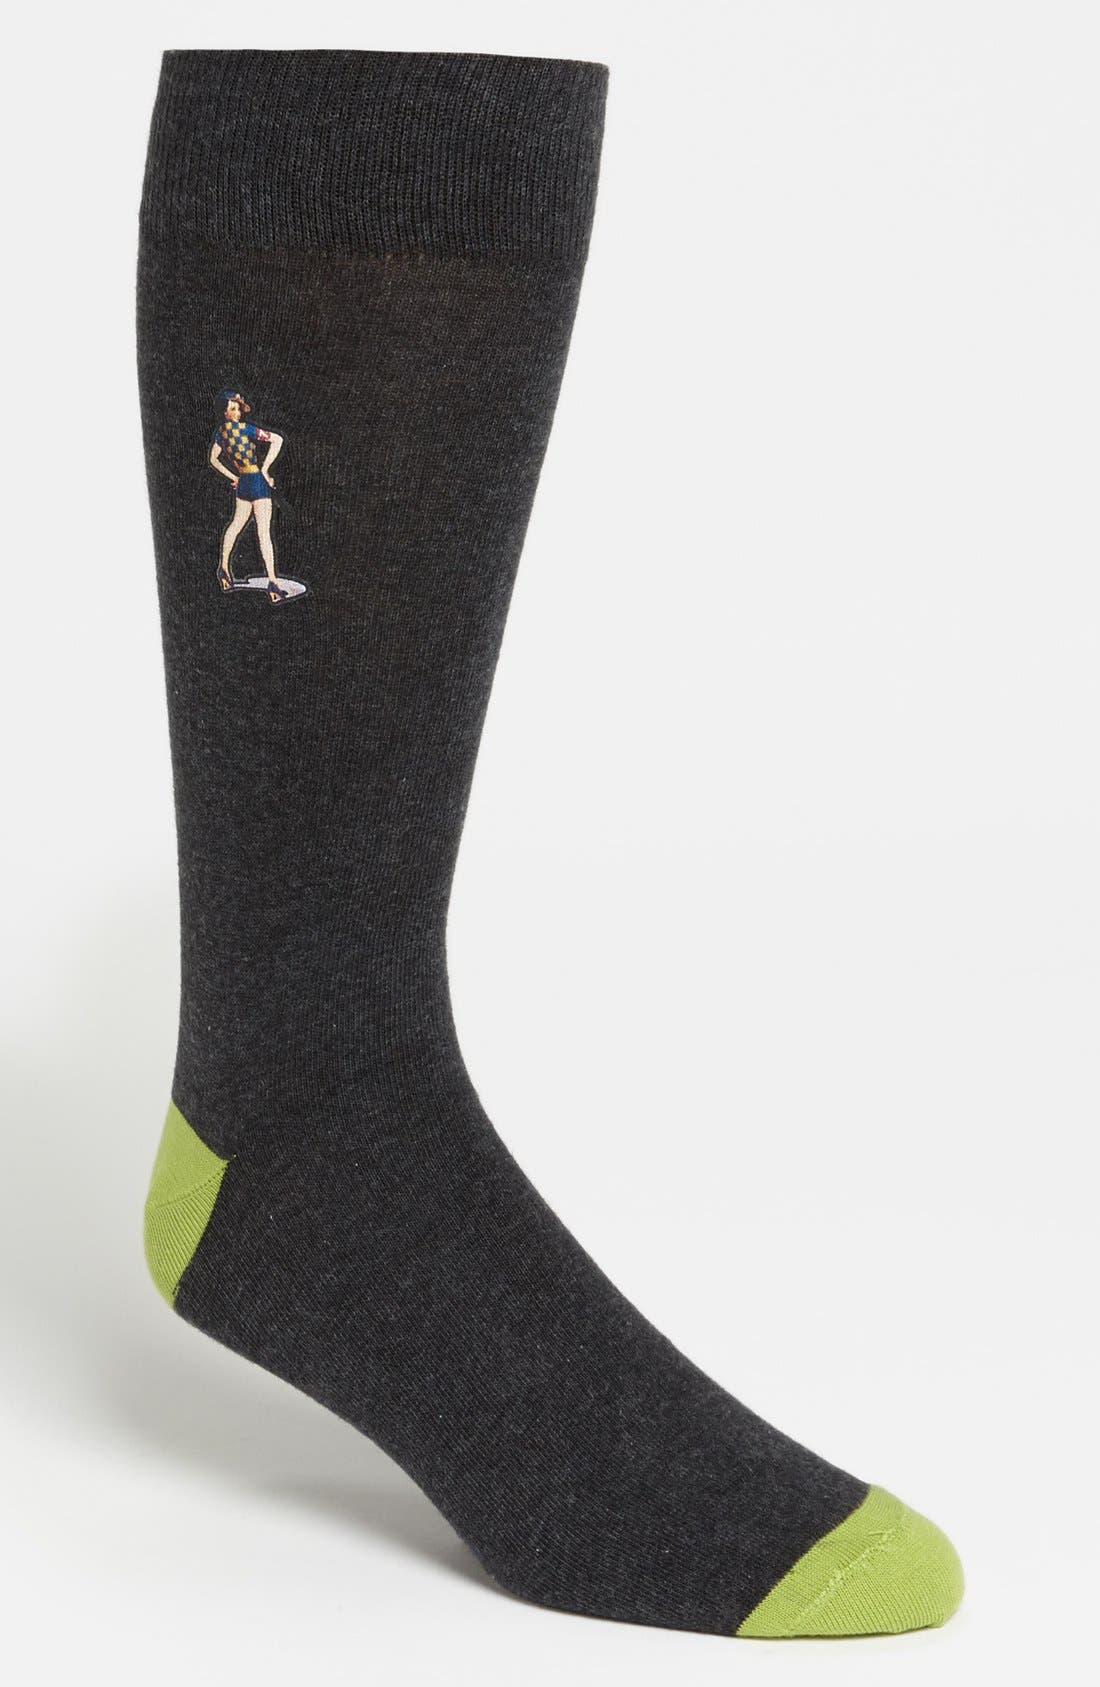 Alternate Image 1 Selected - Lorenzo Uomo 'Pinup Girl' Socks